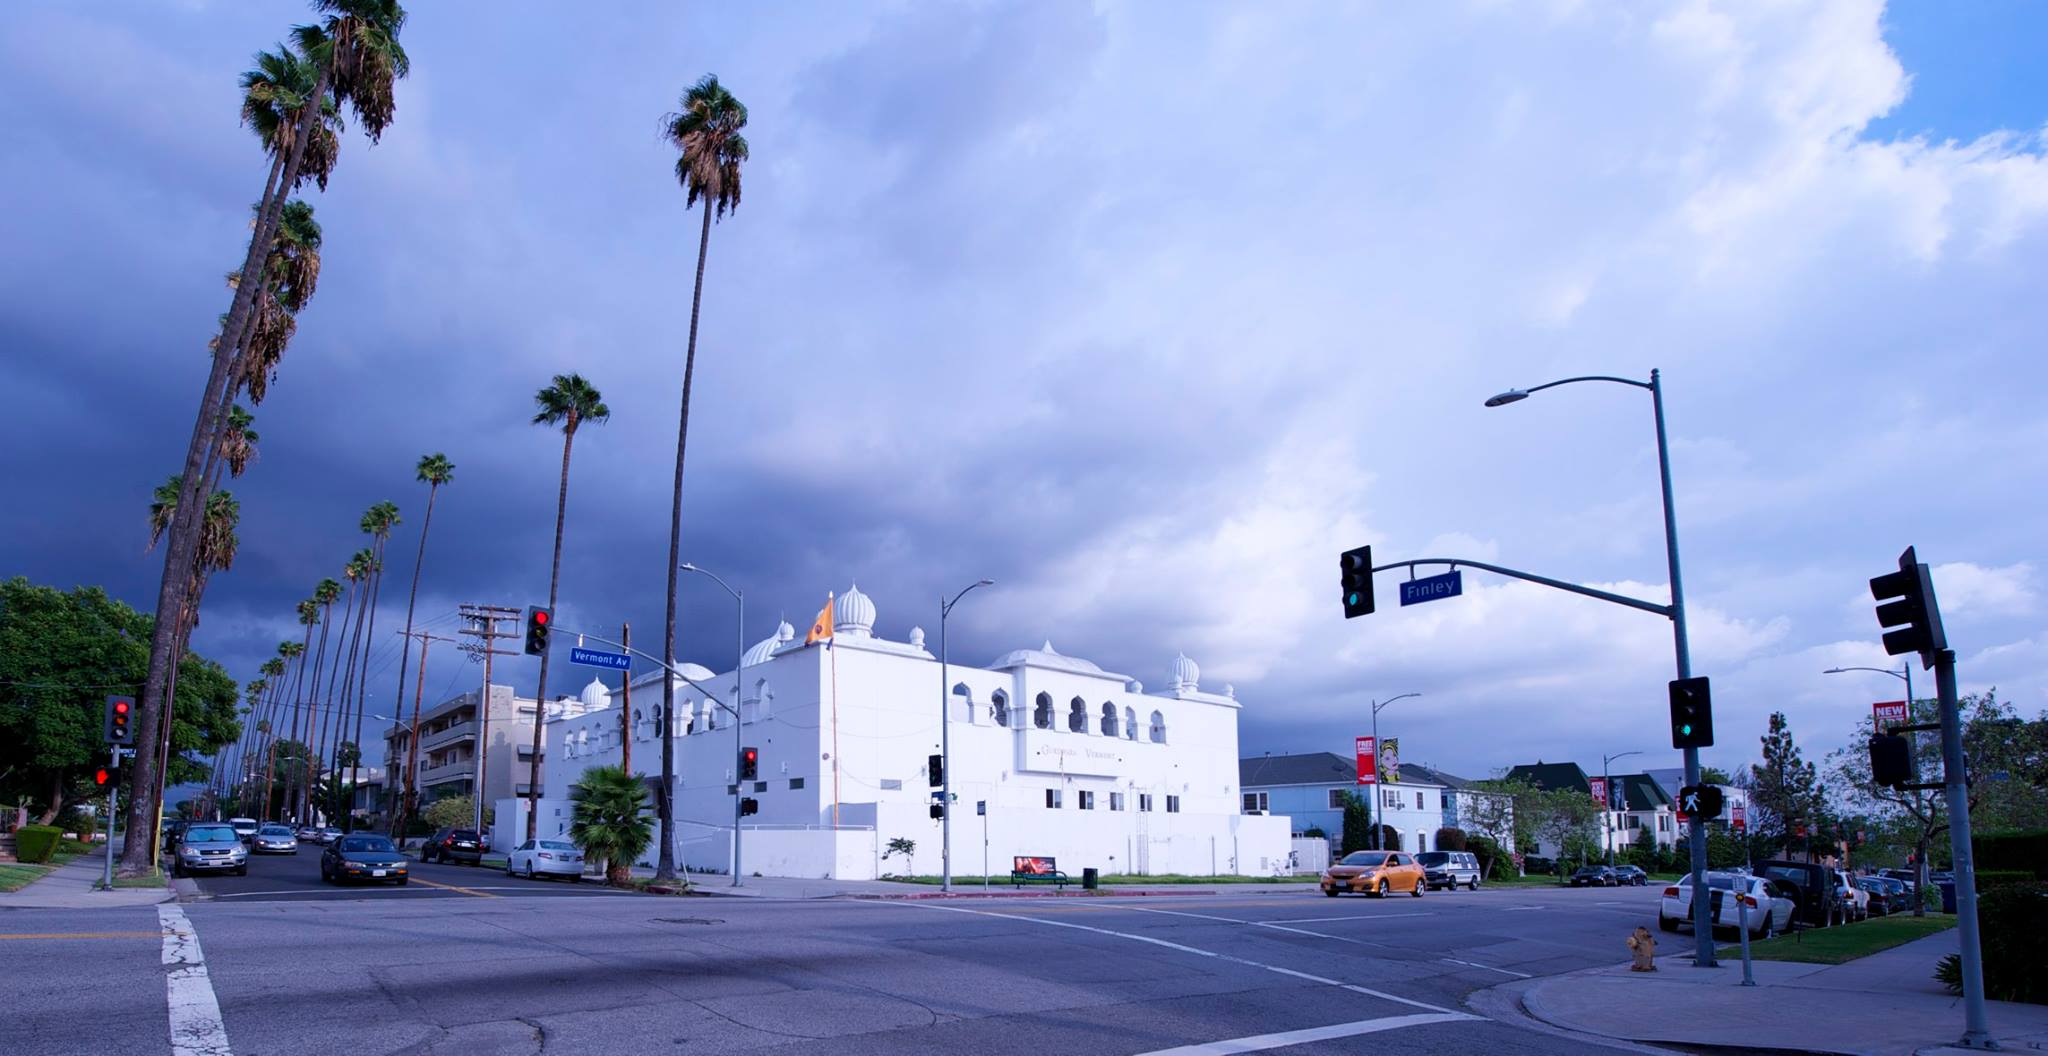 Hollywood Sikh Temple in Los Angeles